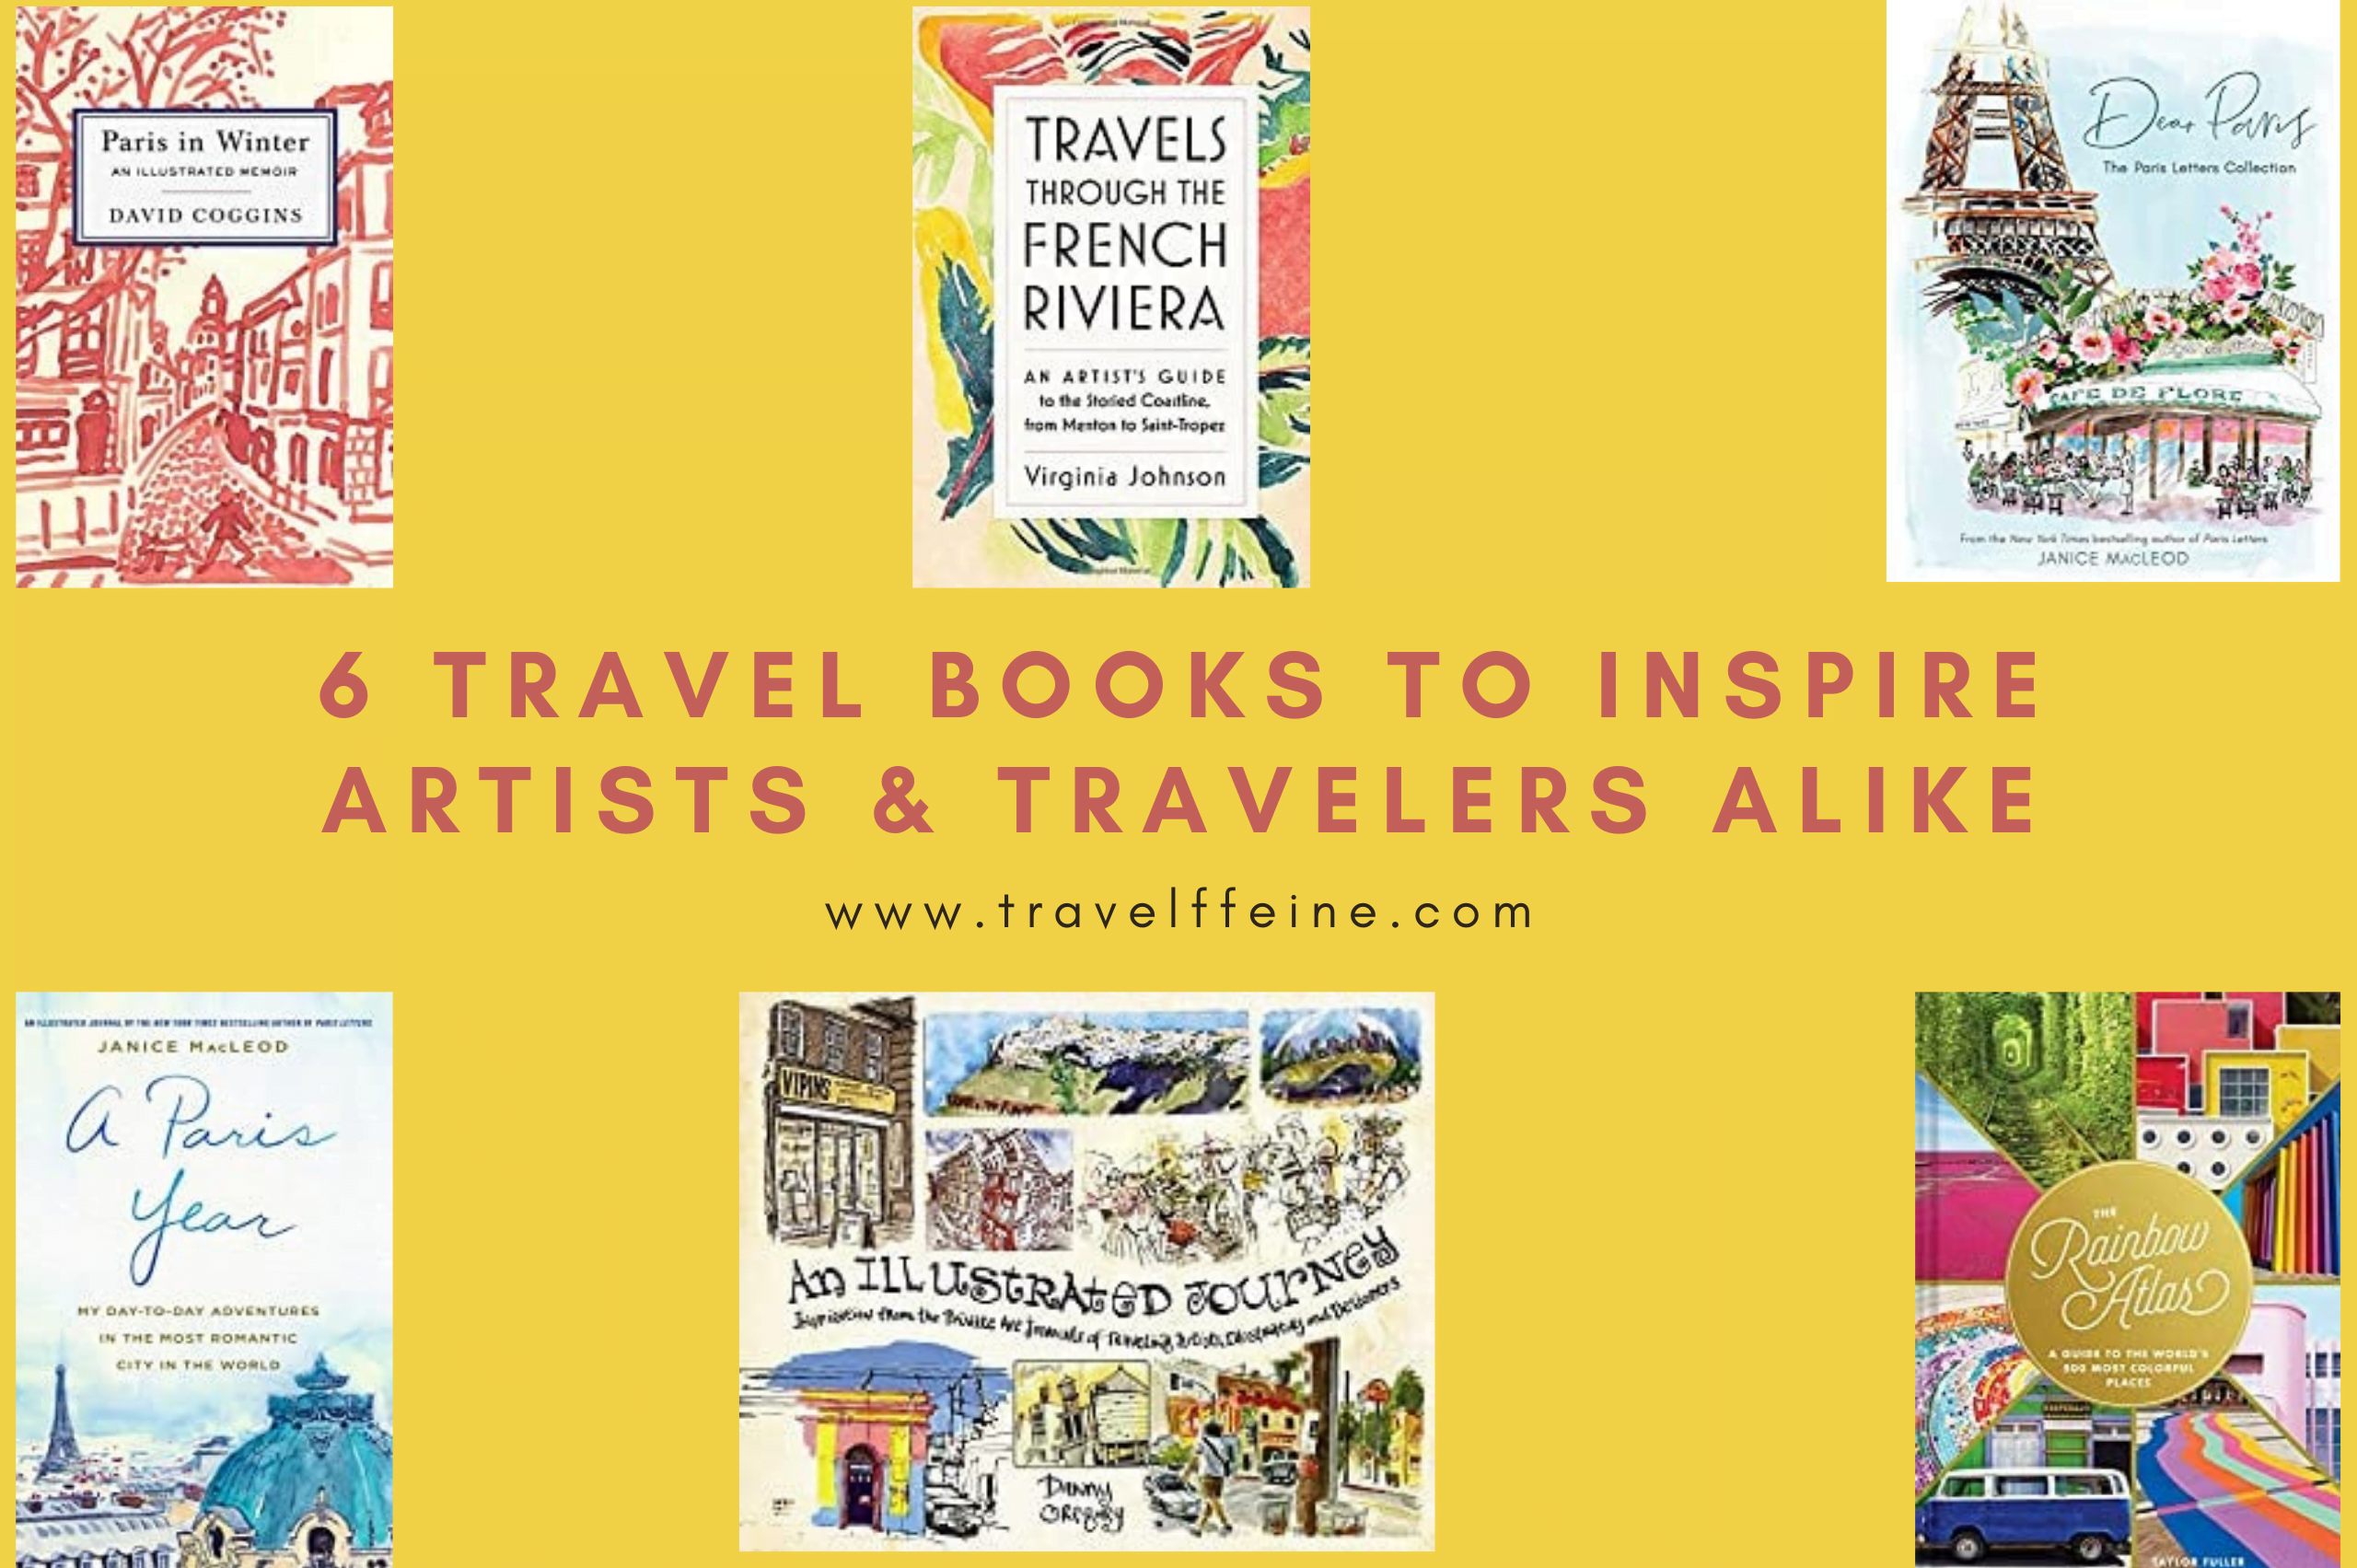 Images of Travel Books for Artists